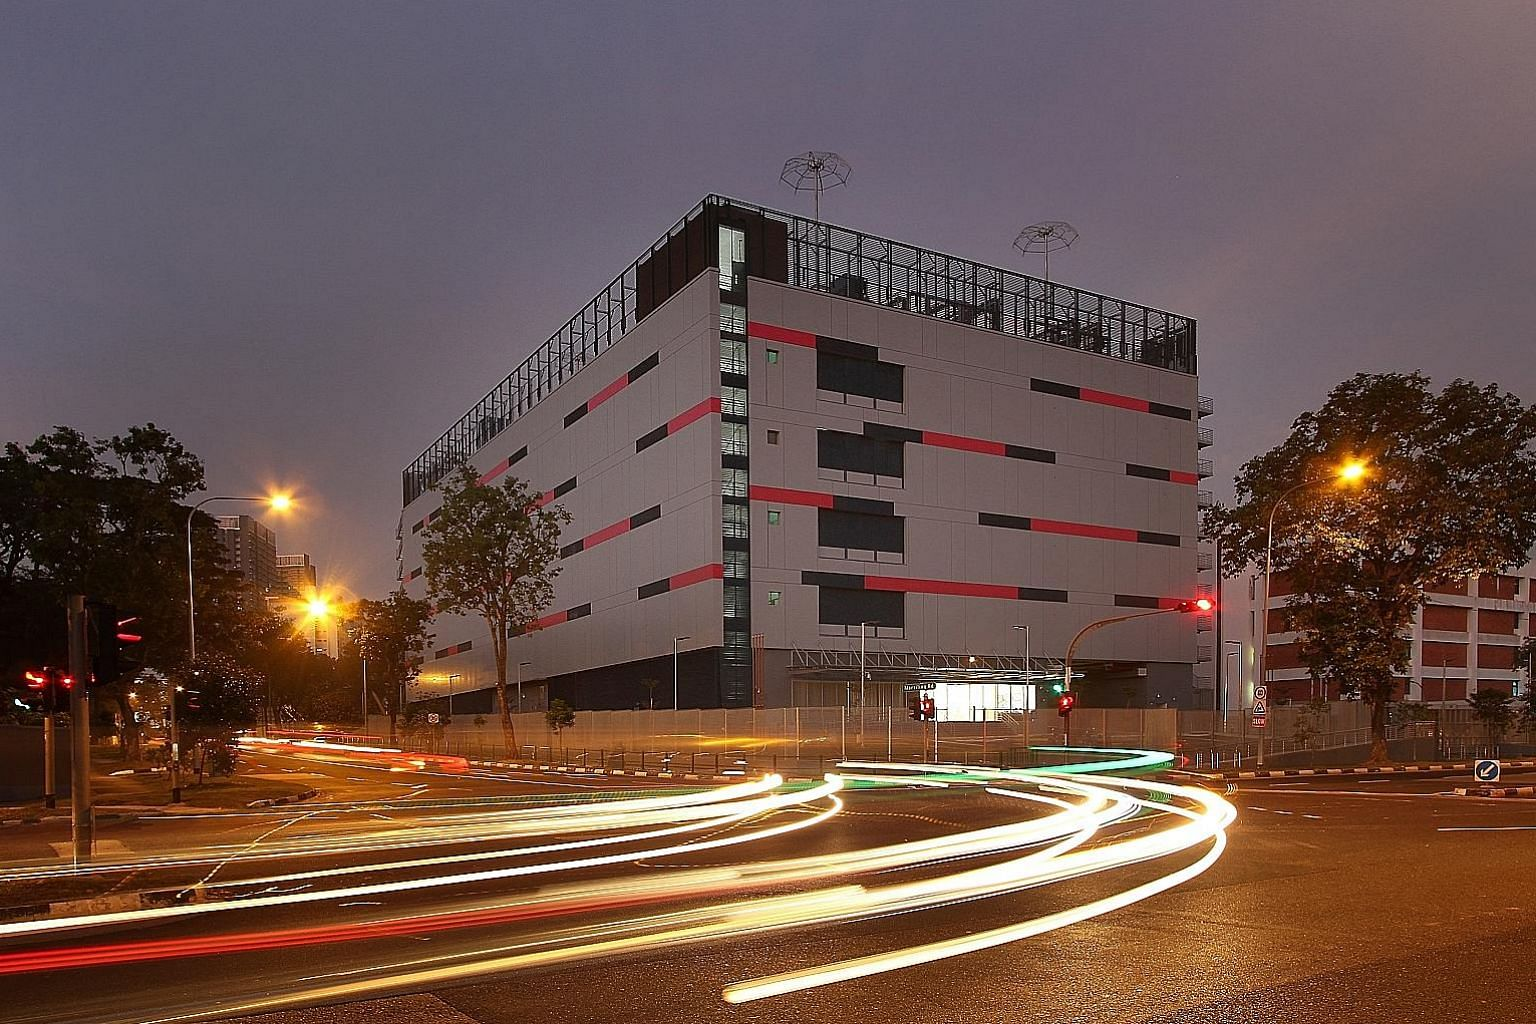 Keppel DC Reit is using part of the funds raised to buy 1-Net North Data Centre, a five-storey purpose-built facility located at 18 Riverside Road.